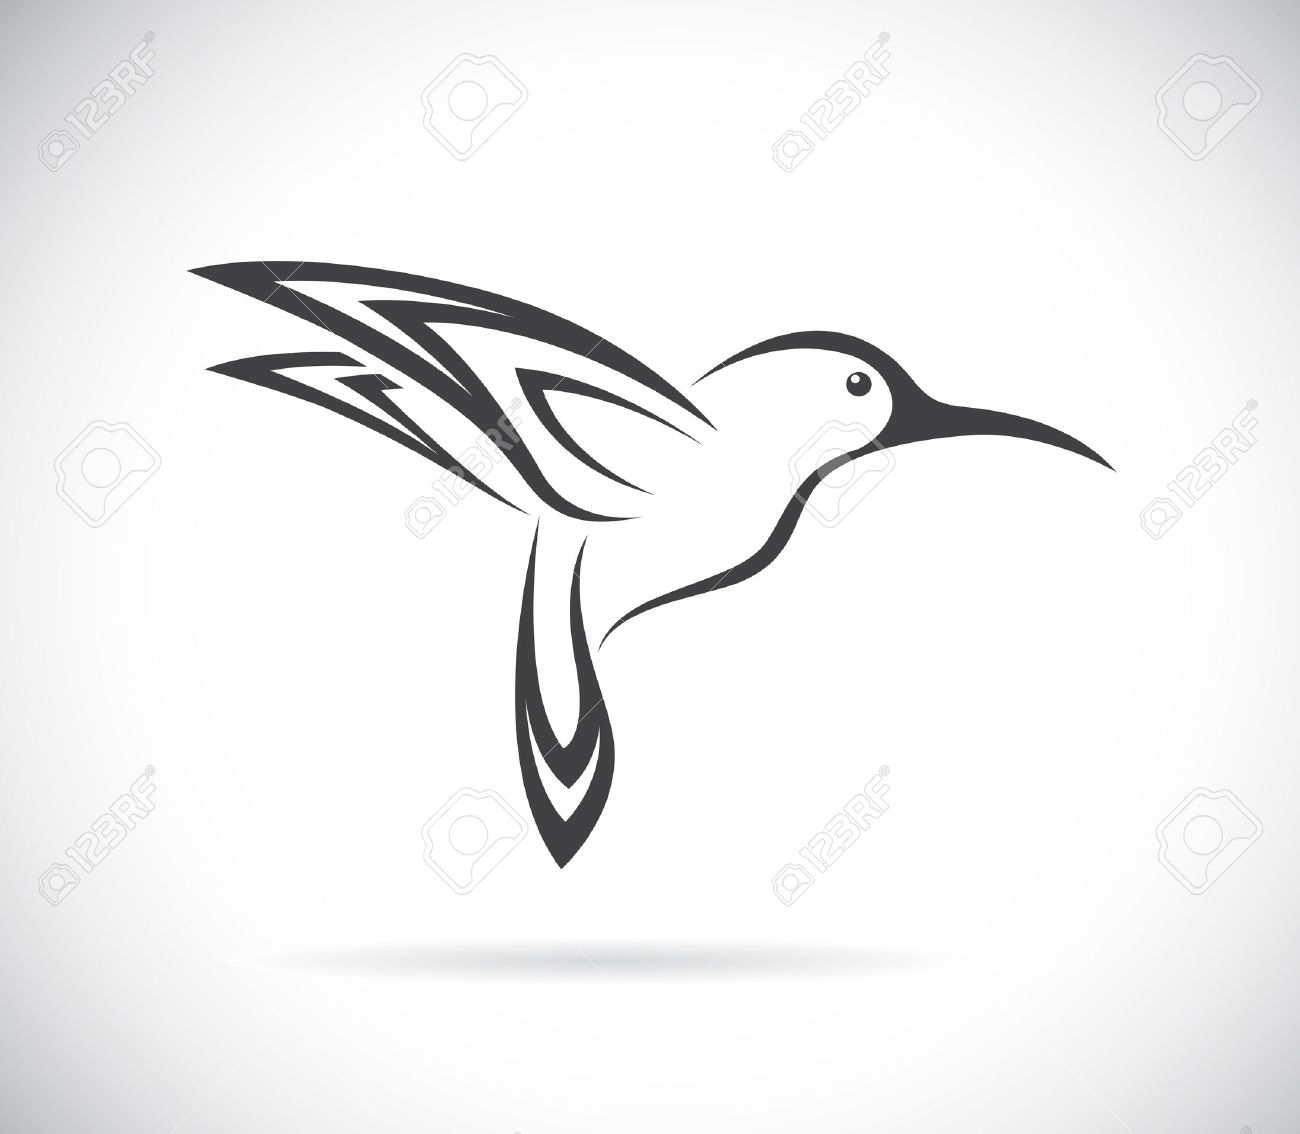 Vector image of an hummingbird design on white background.